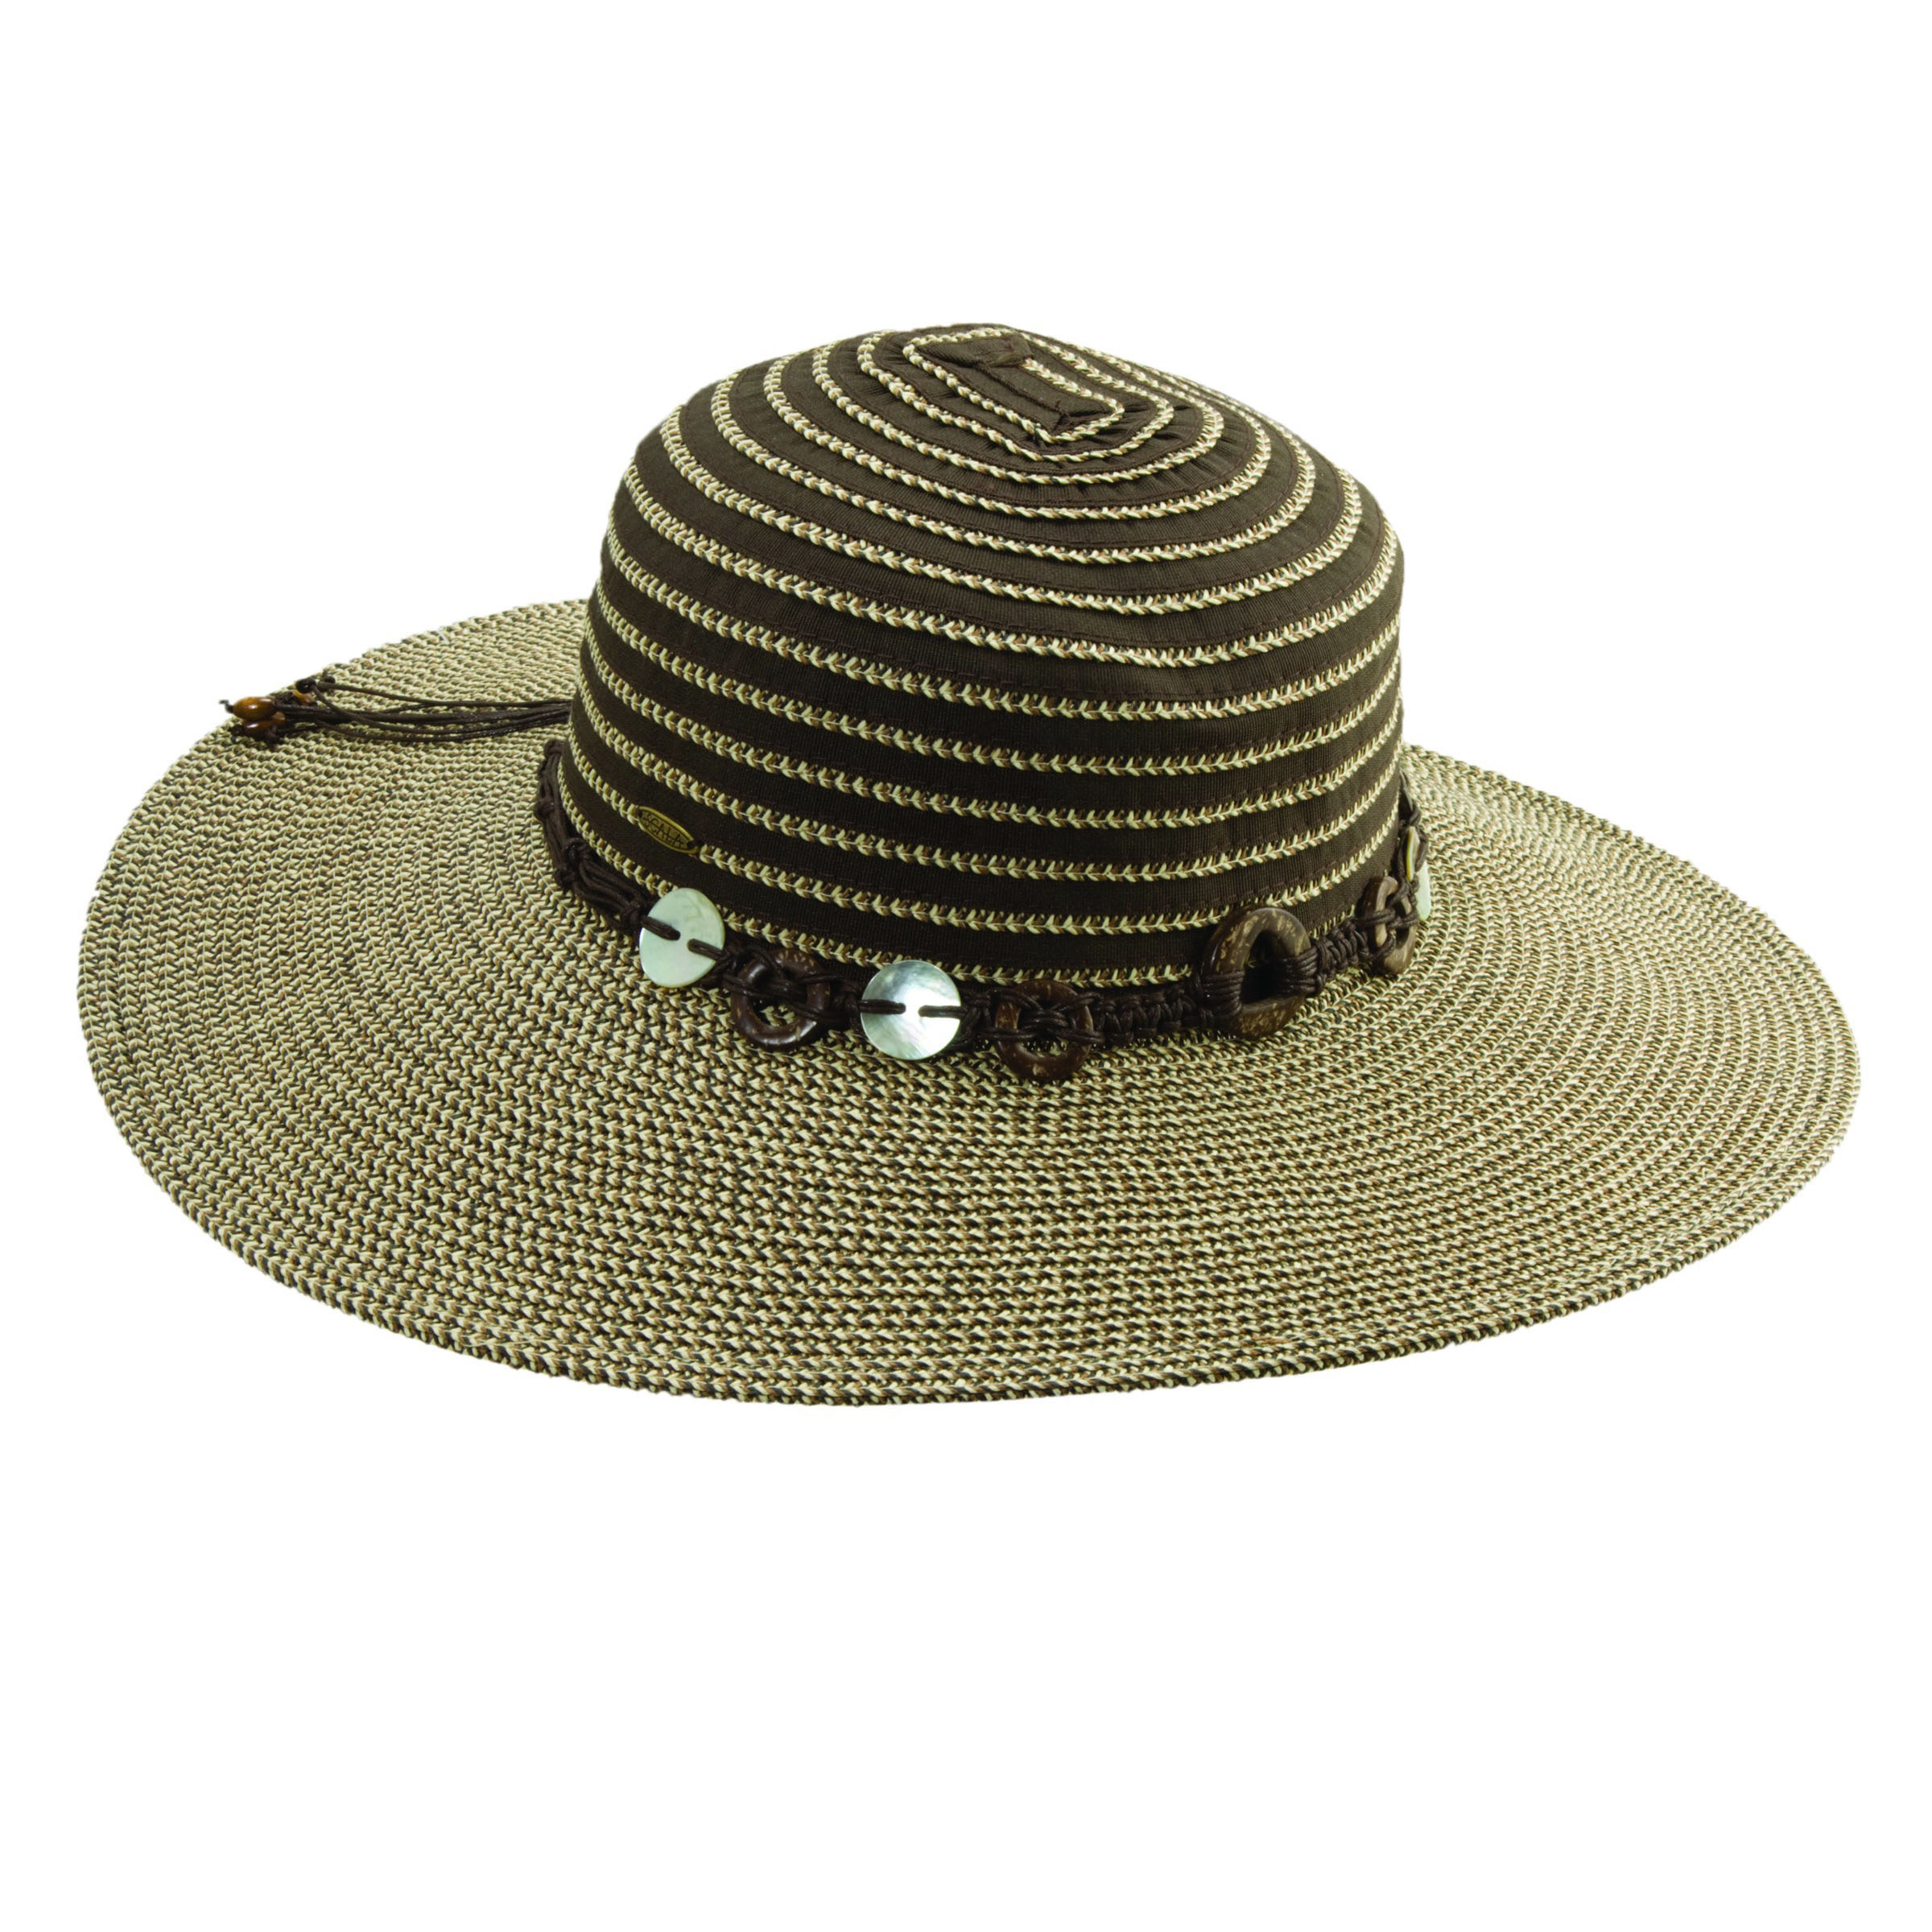 Ribbon-Paper Braid Sun Hat with Shell Trim Brown 746cda9c7d3